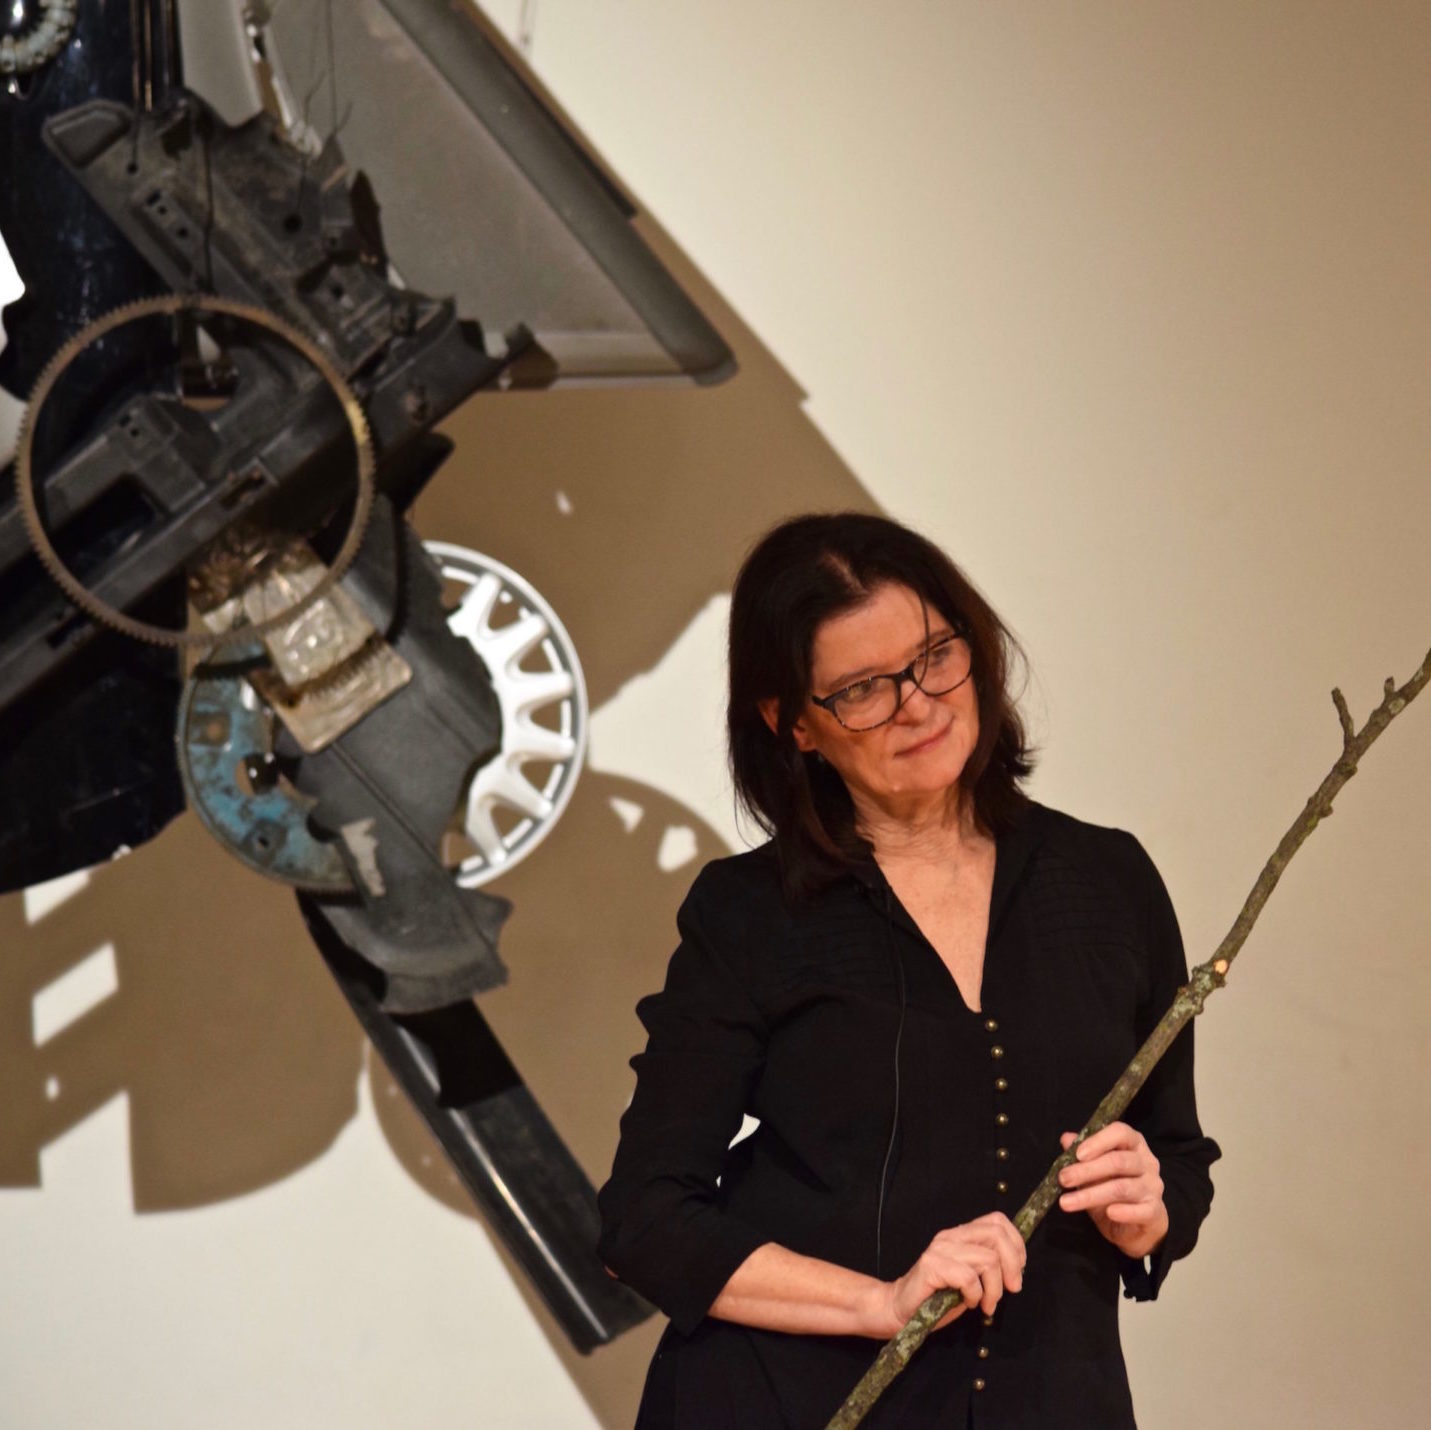 Carla Harryman author photo, indoors, holding a long stick, in front of a large metal machine